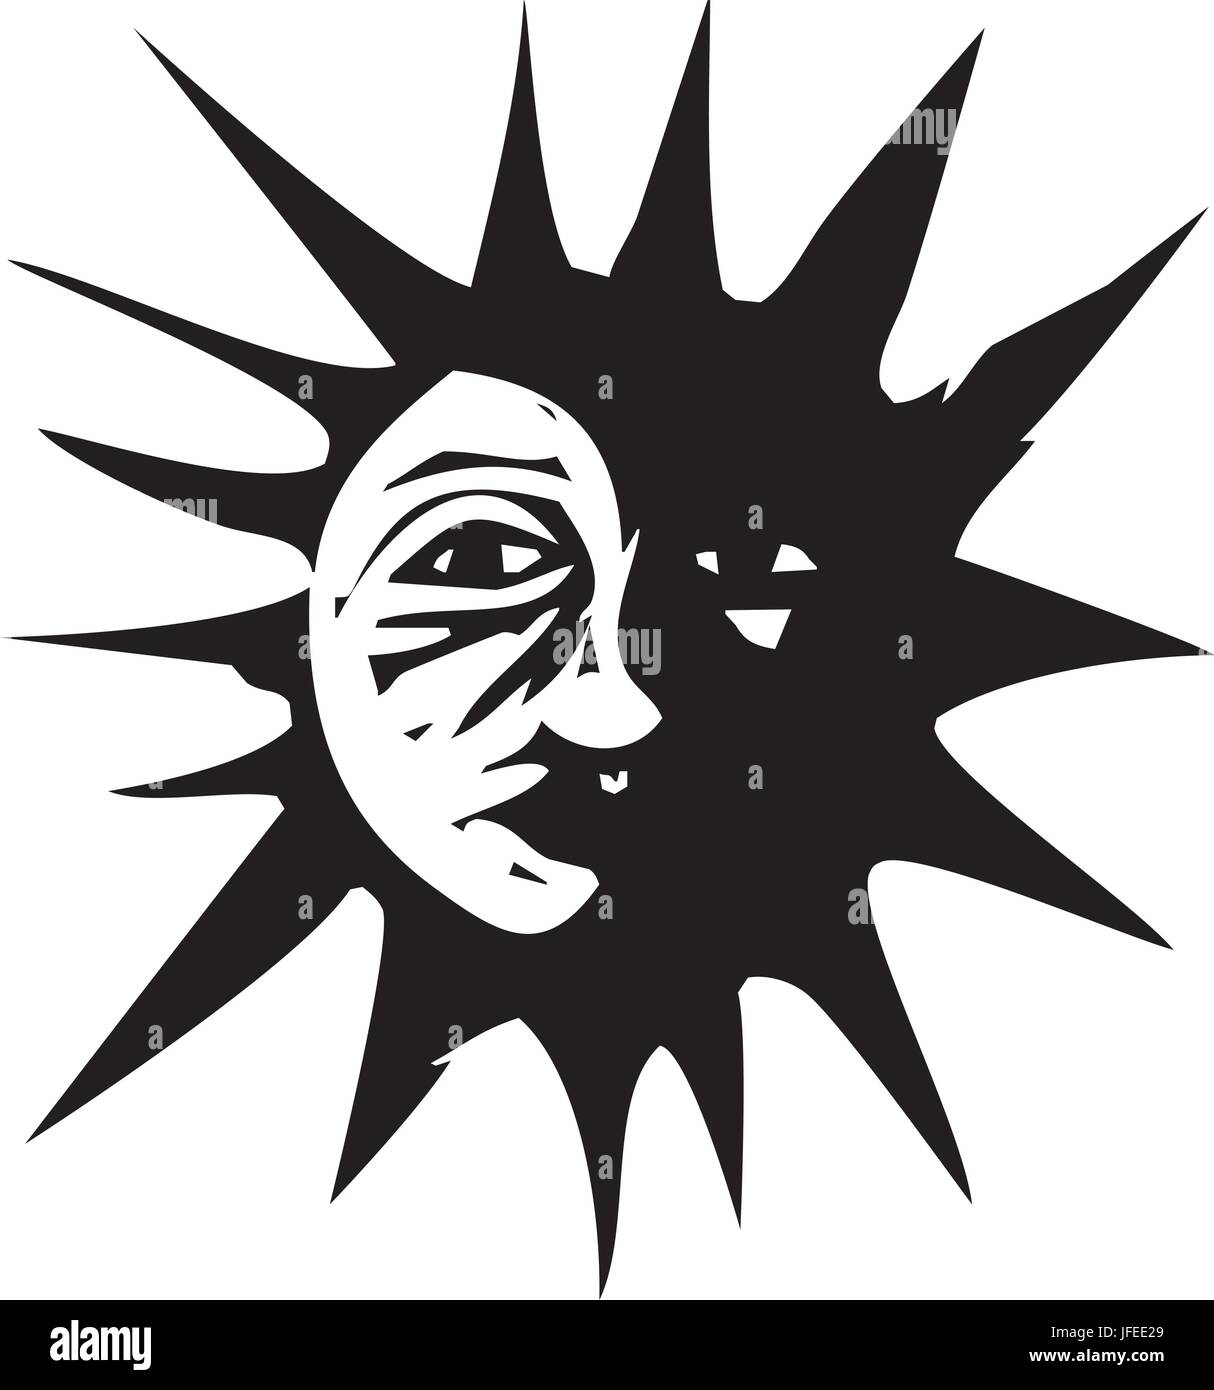 Woodcut style image of the sun in eclipse by the moon. - Stock Vector